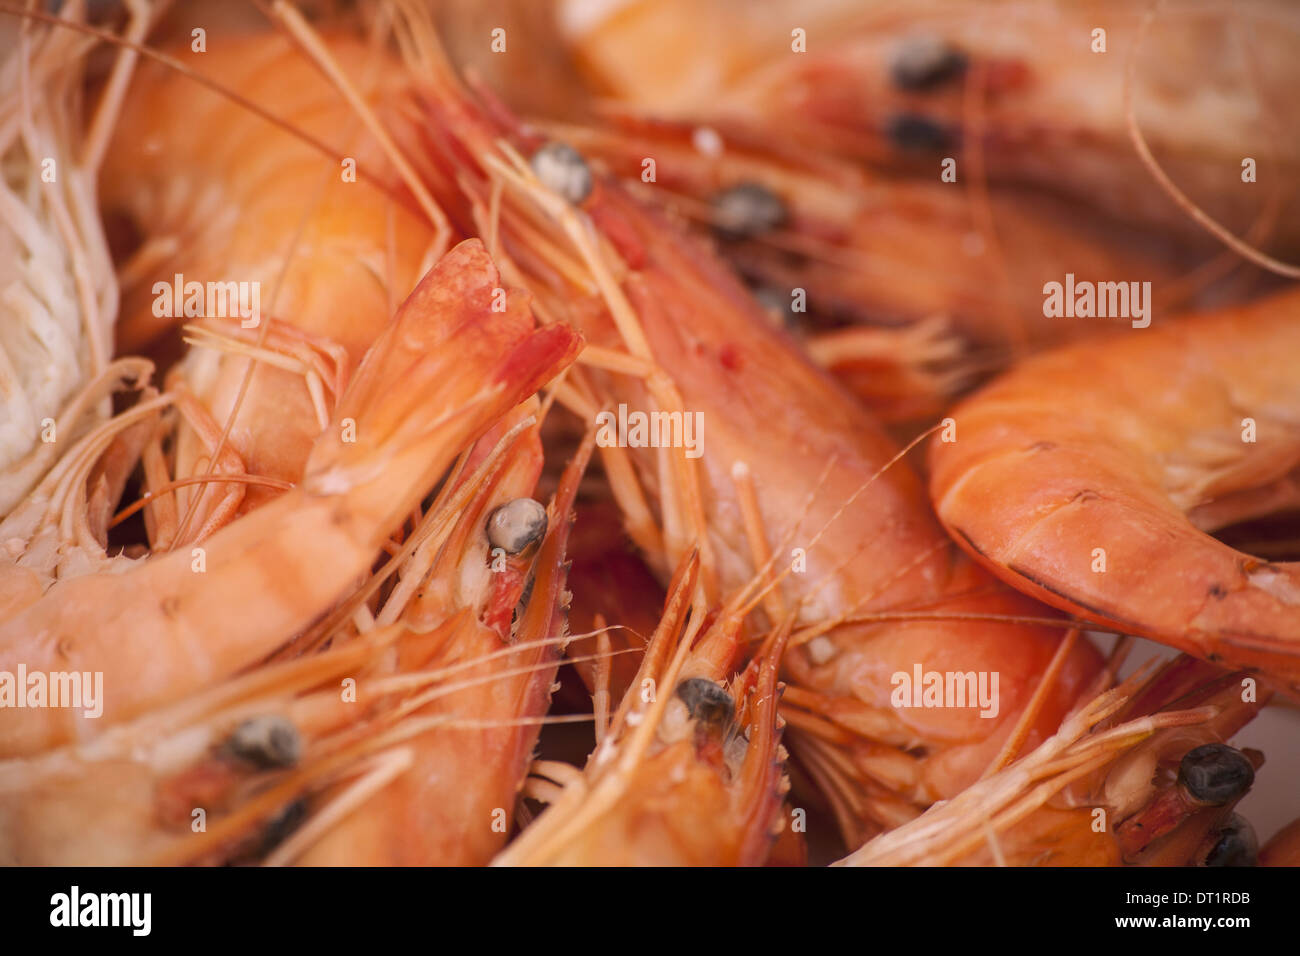 A dish of freshly cooked prawns with shells heads and tails on Seafood - Stock Image